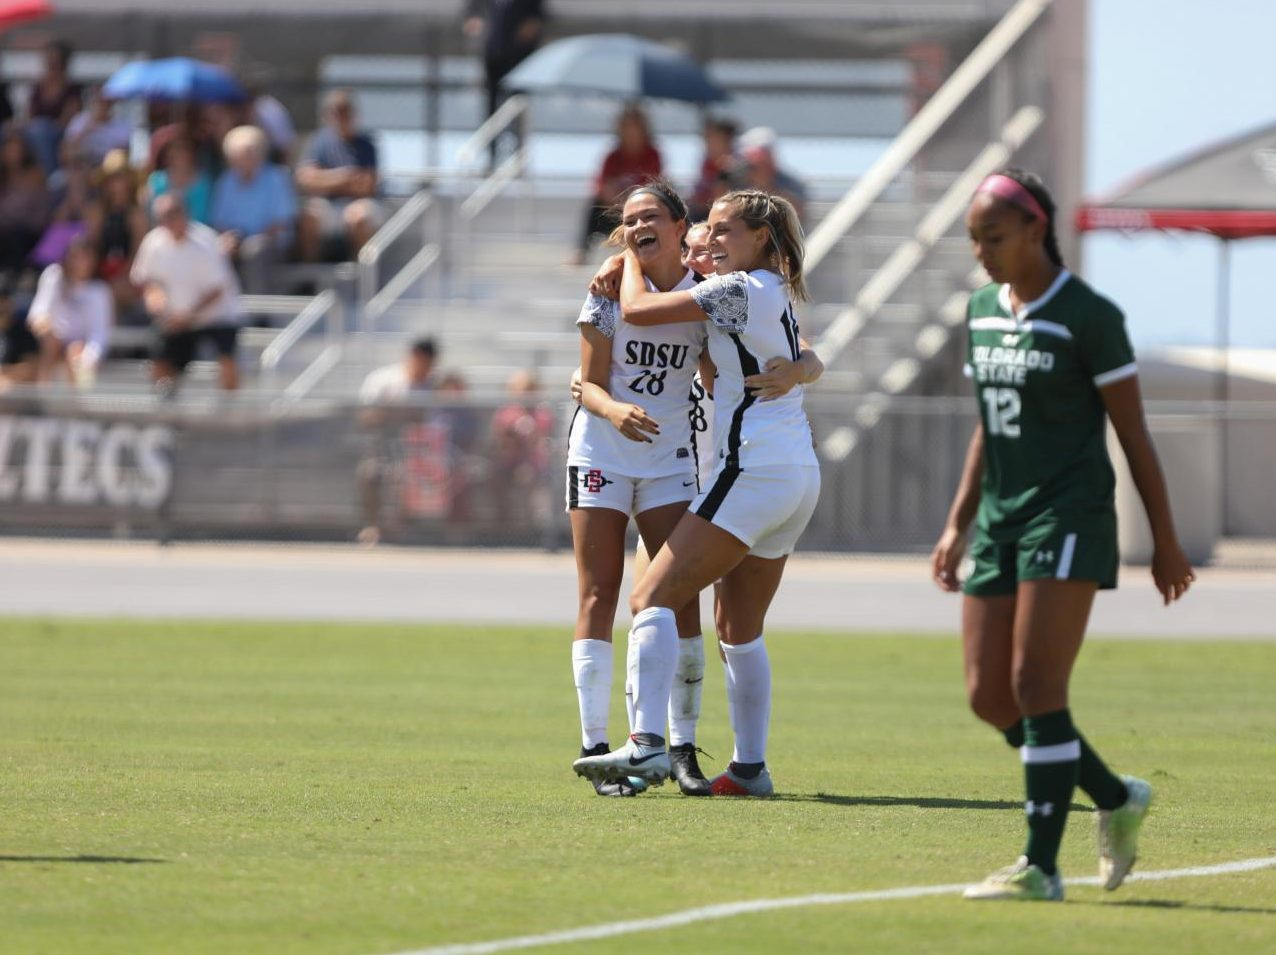 Freshman forward Rachelle Elve (28) celebrates with her teammates after scoring a goal during the Aztecs' 2-0 win over Colorado State on Sept. 29 at the SDSU Sports Deck.